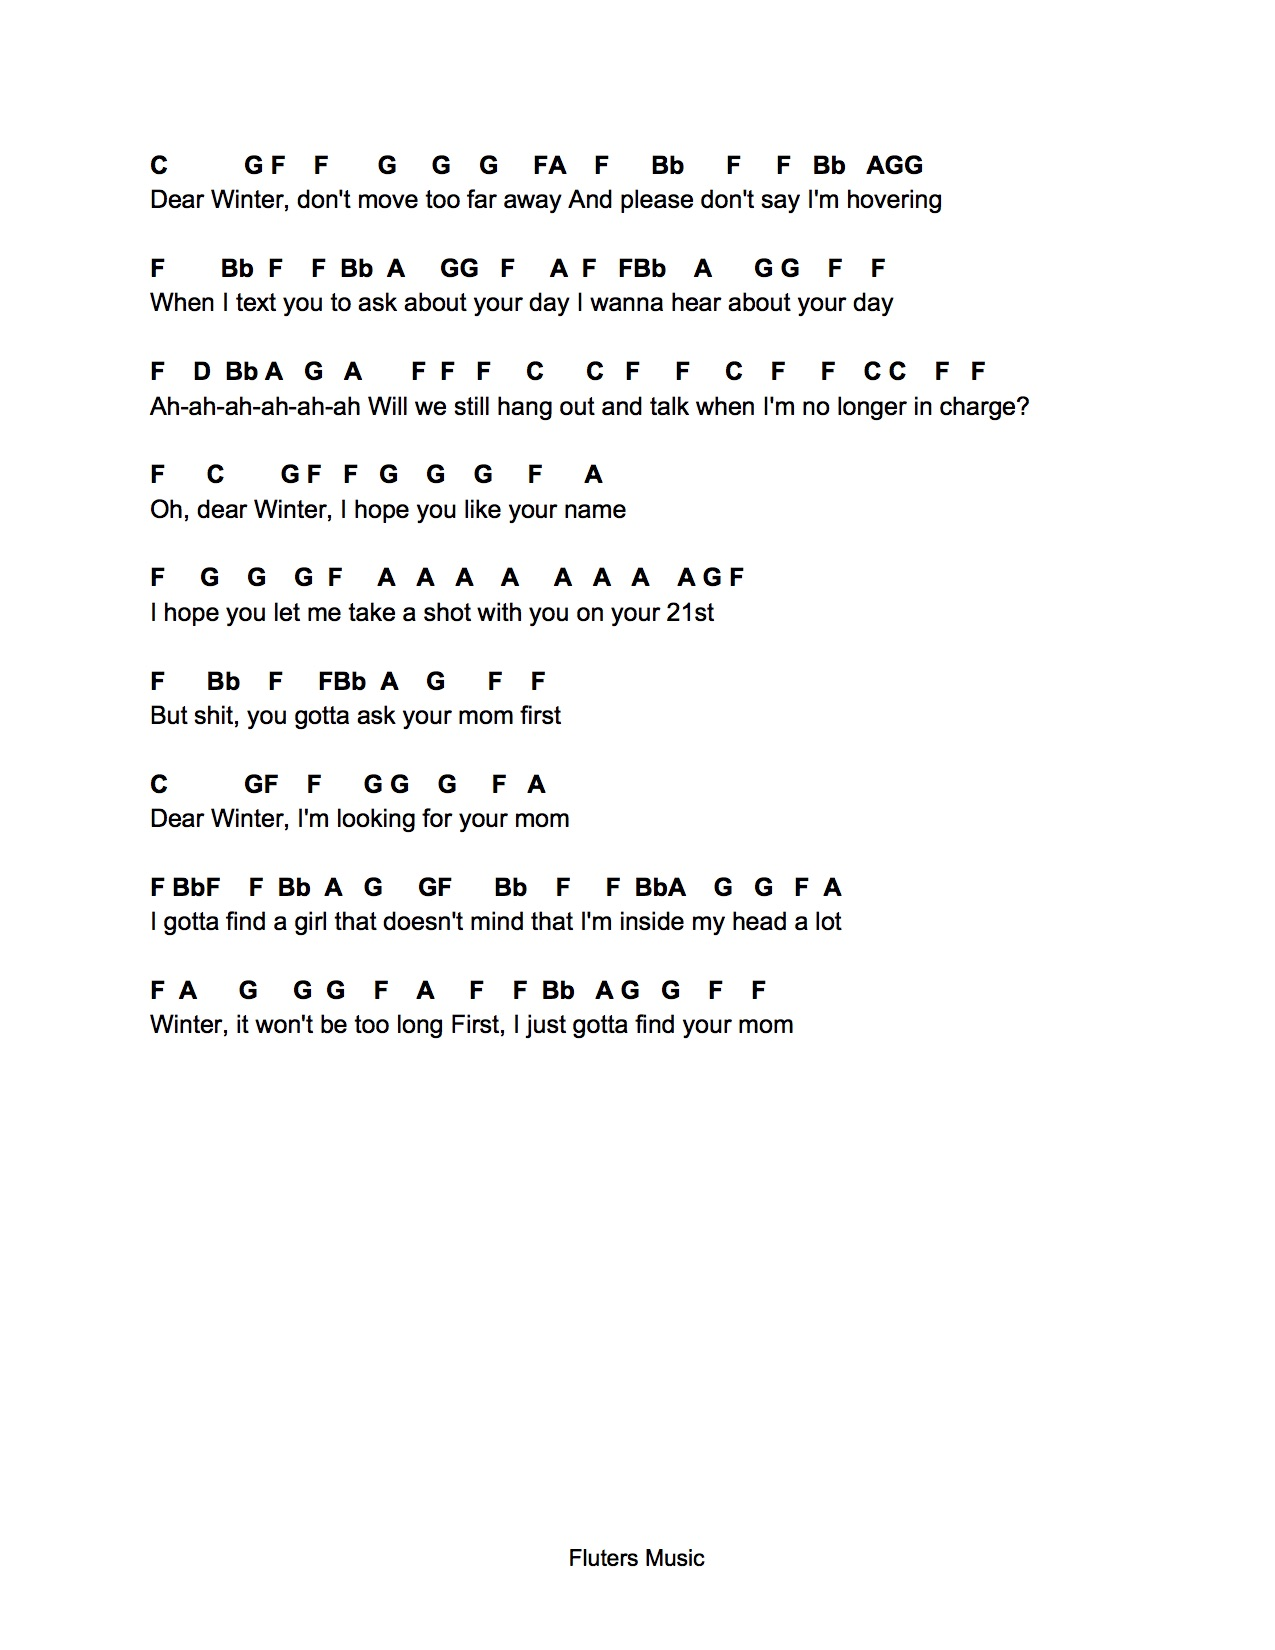 Flute Sheet Music Dear Winter Free and guaranteed quality tablature with ukulele chord charts, diagrams, transposer and auto scroller. flute sheet music dear winter